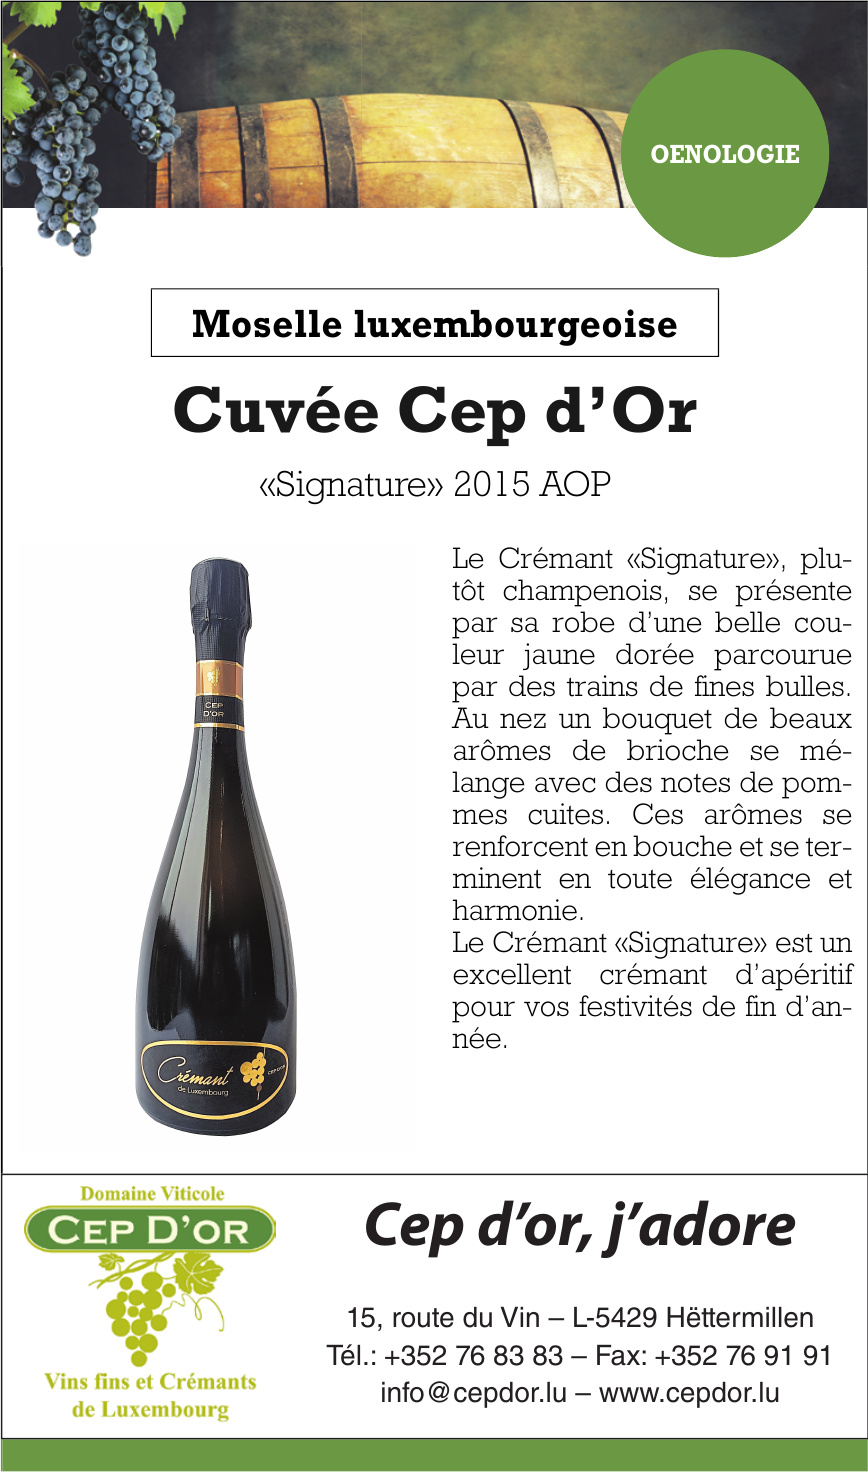 Cep d'or, j´adore